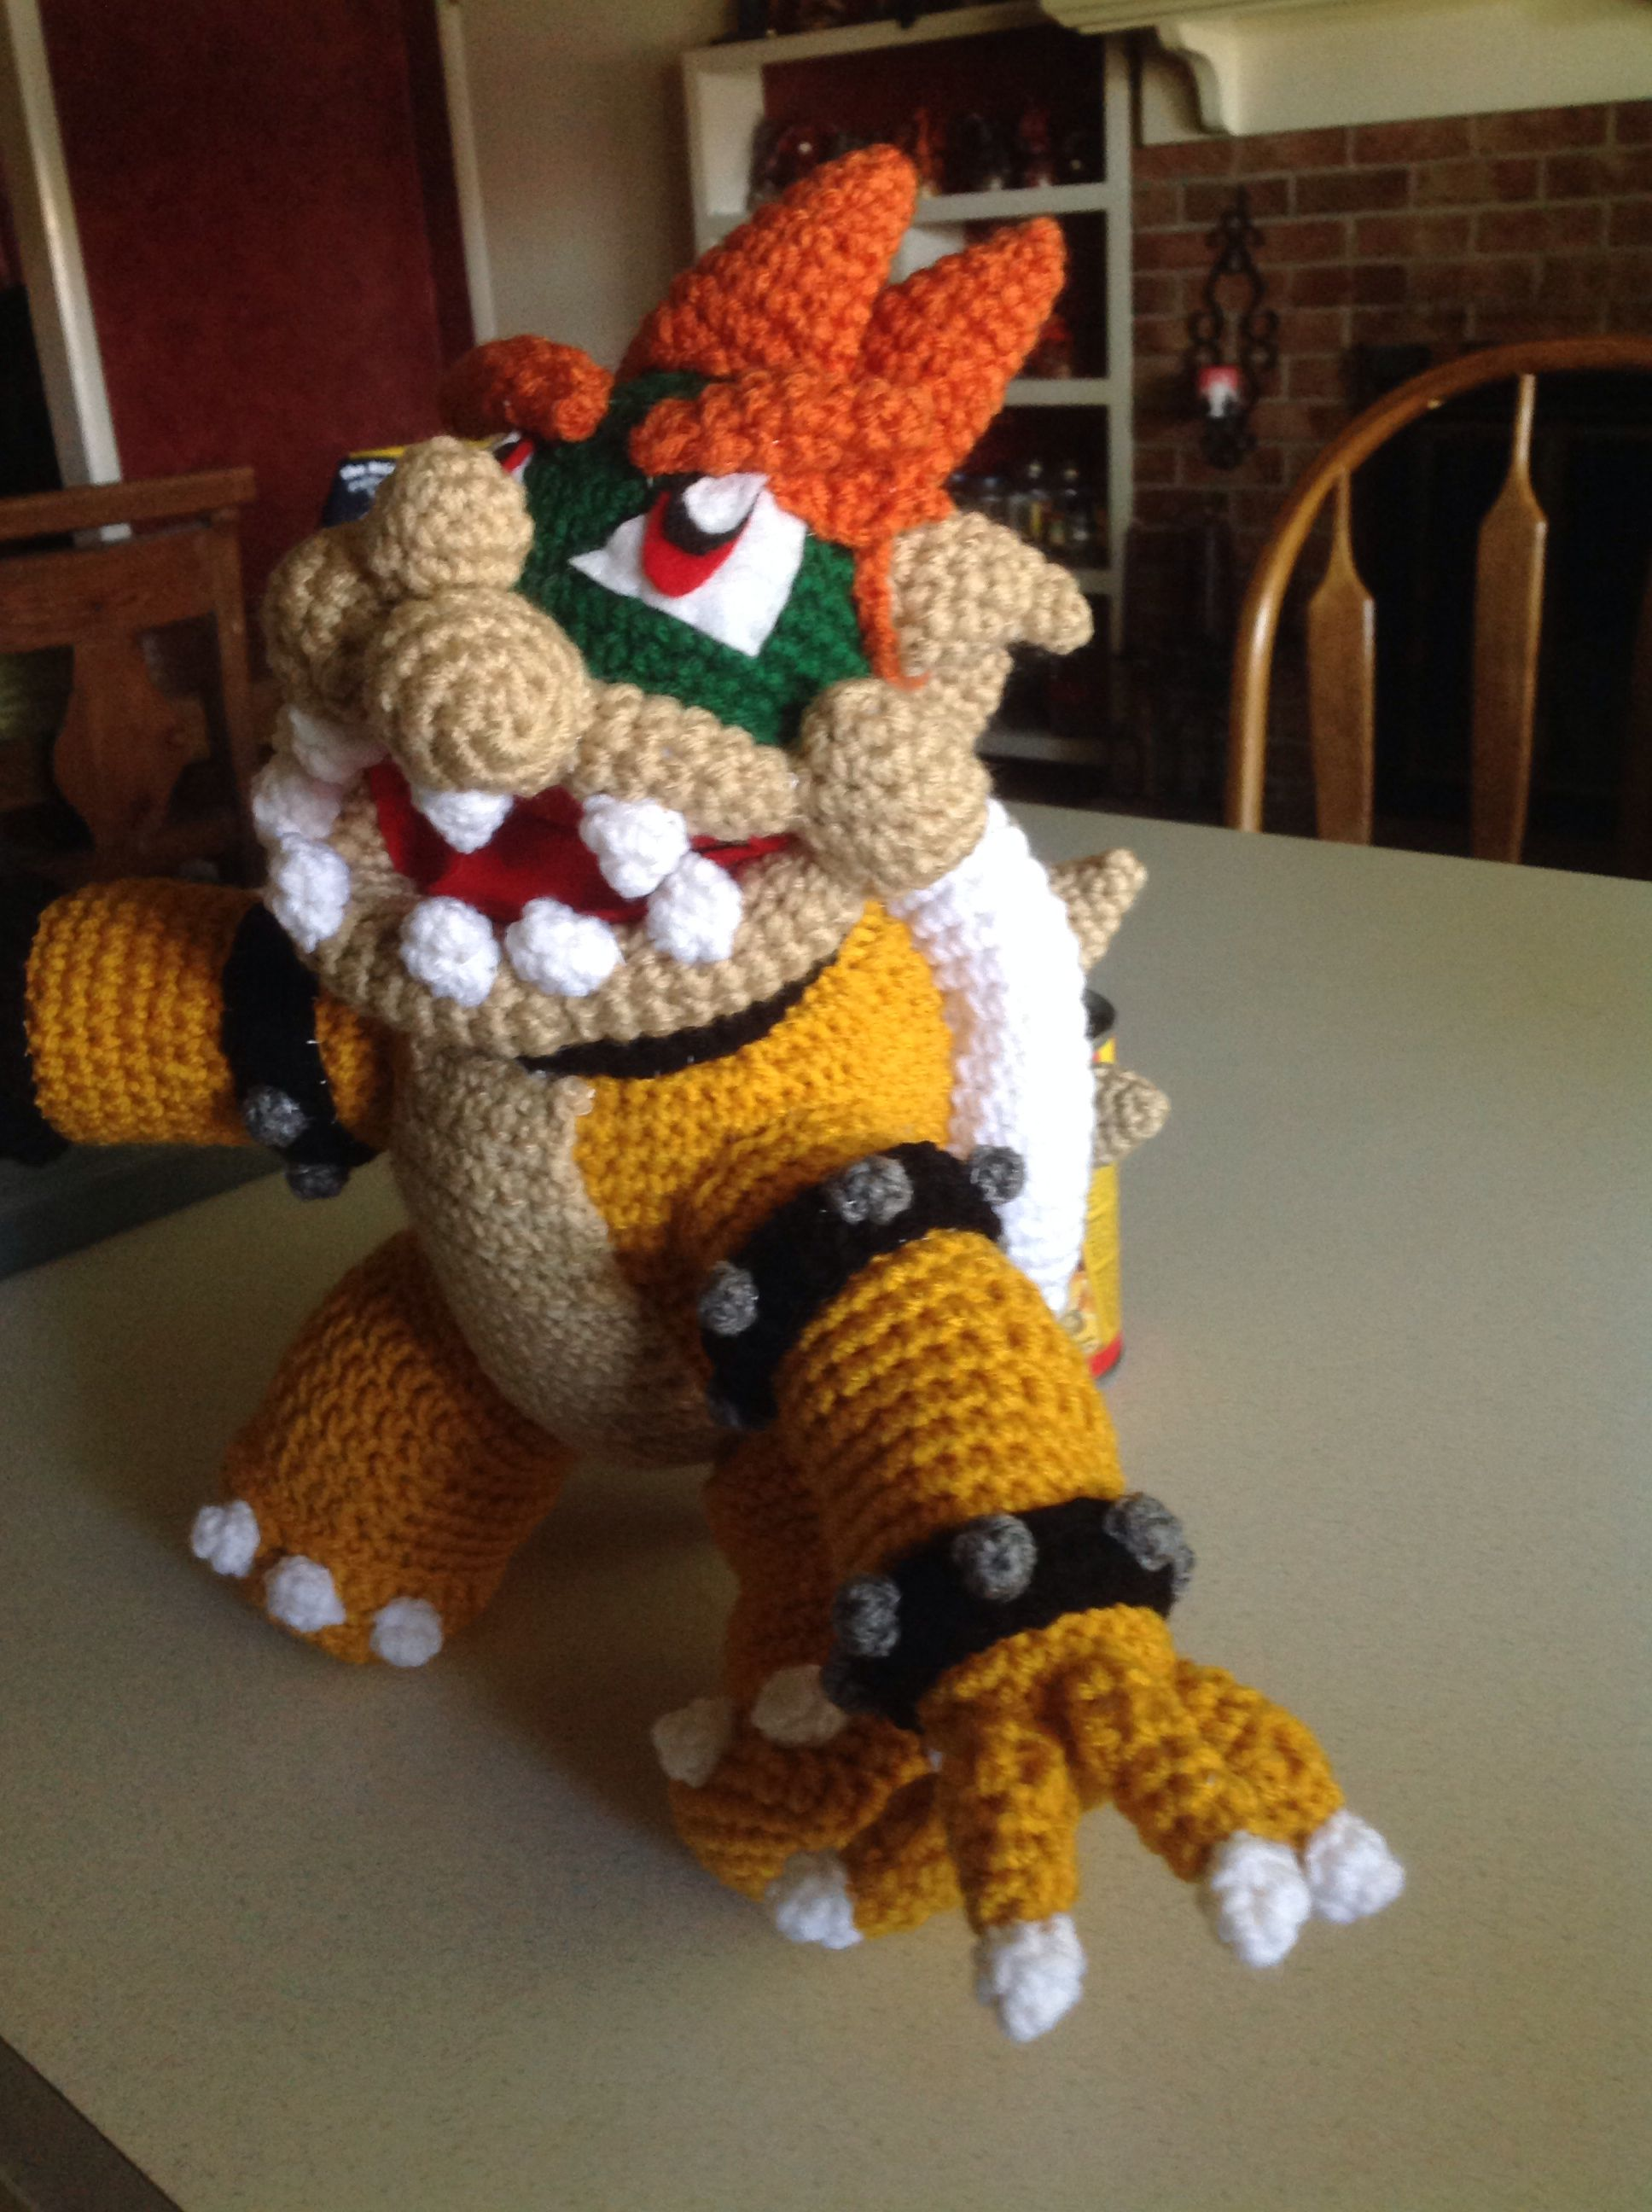 My Bowser, had to take a break from the spikes on arms/neck... But ...